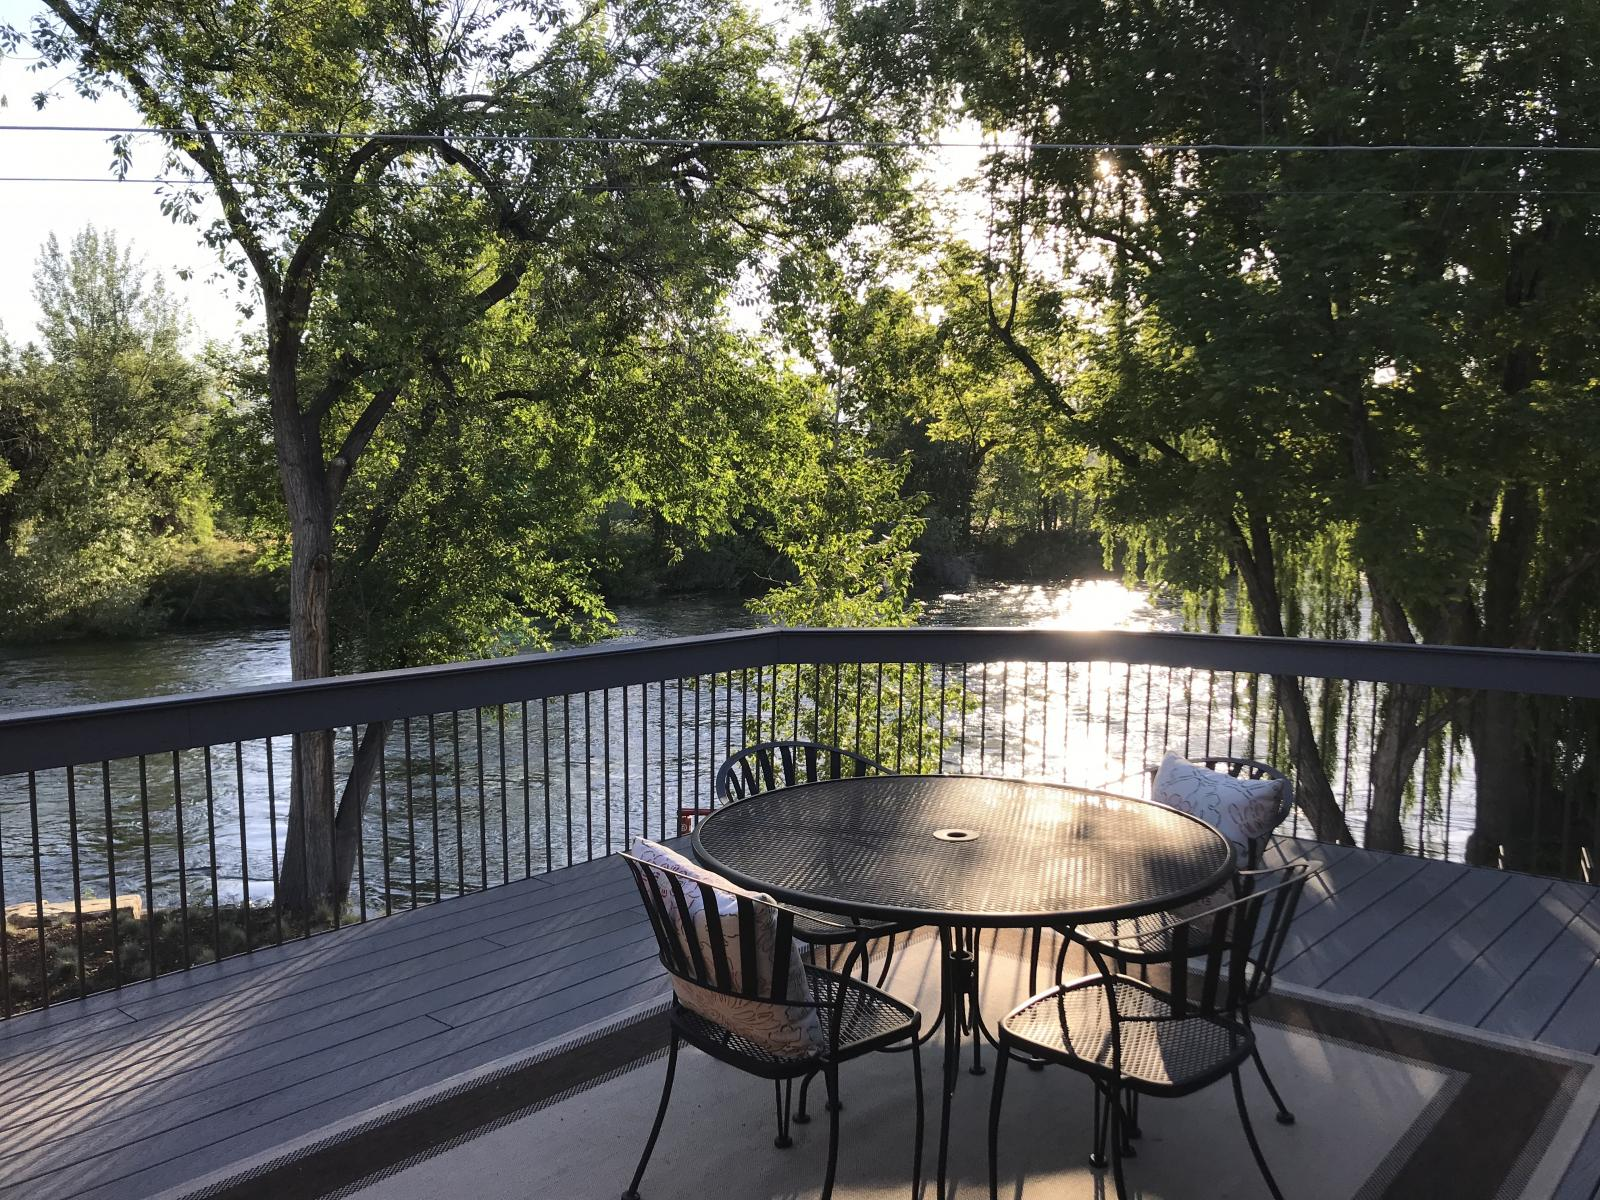 Beautiful deck view of the Boise River at the fabulous Riverside Inn